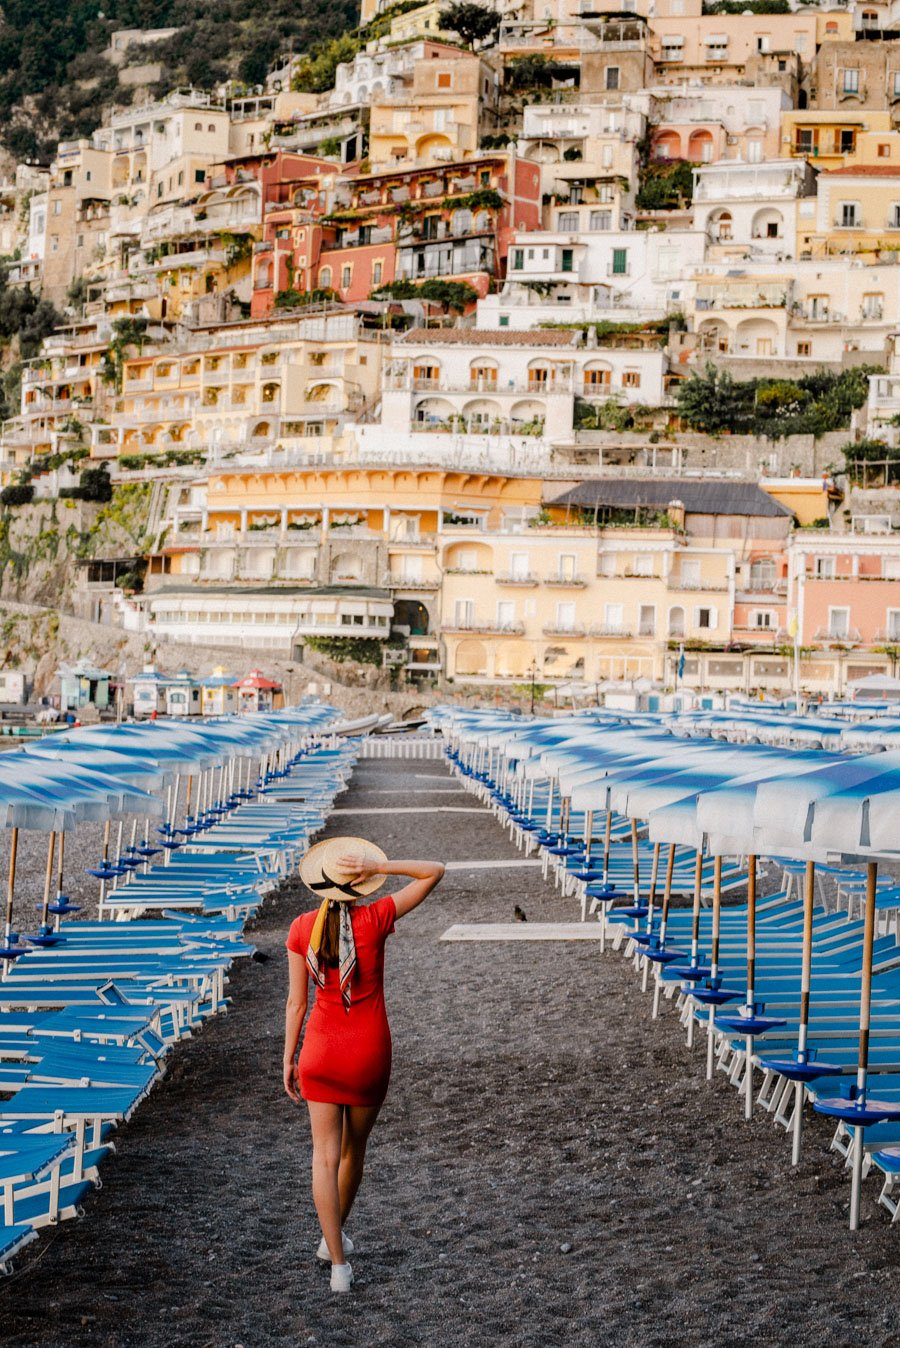 Take beautiful photos when you visit Positano. Discover the best photo locations in Positano. Get the perfect Instagram photo in Positano